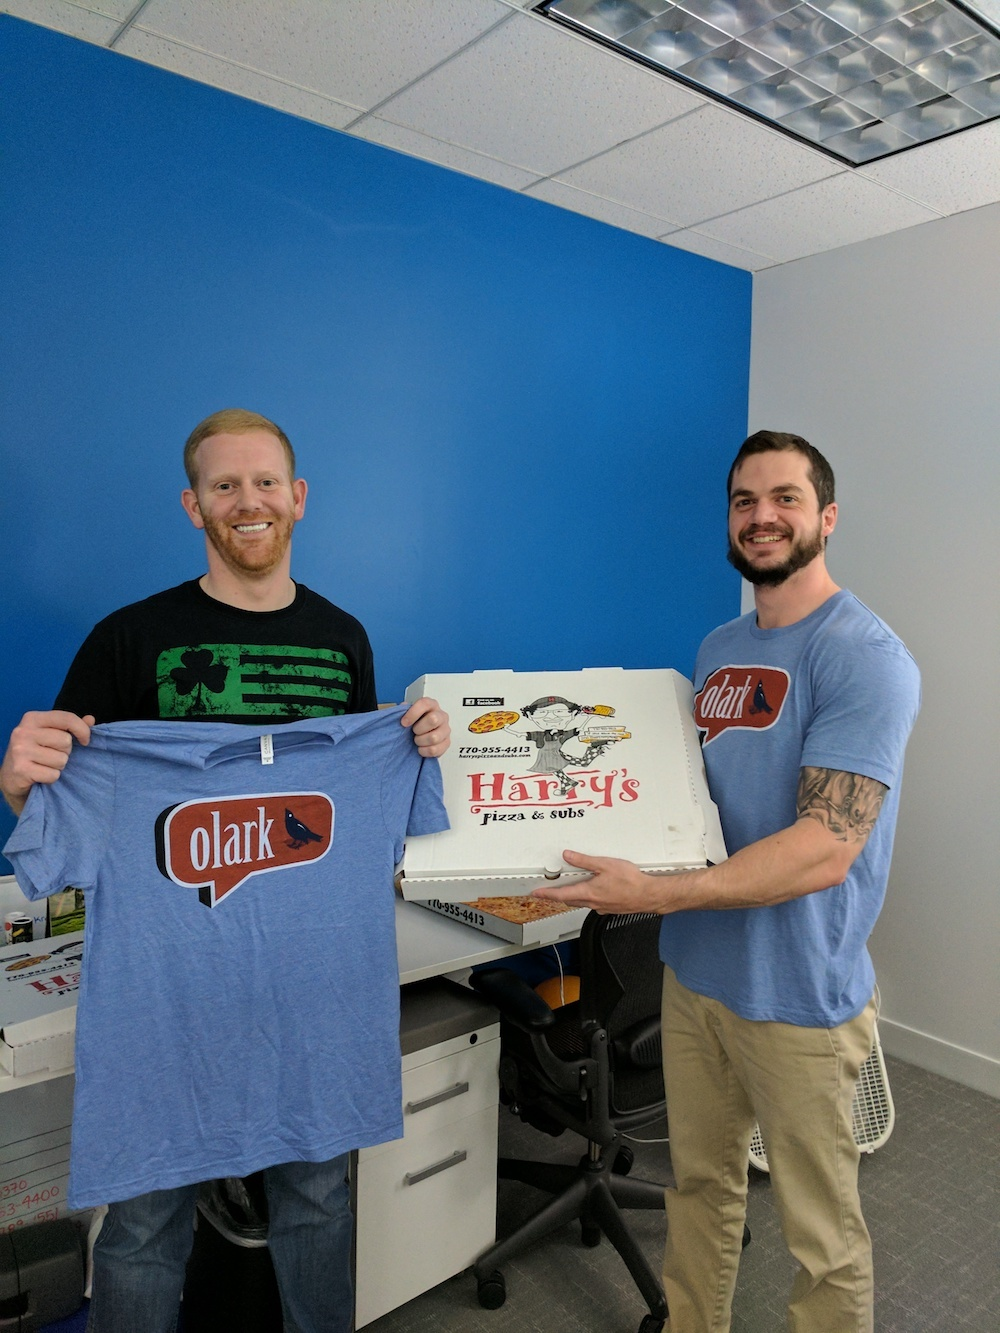 Pictured here: RiverMend staff with t-shirts from Olark live chat. The team works hard to provide the best customer support possible on live chat for potential clientele.